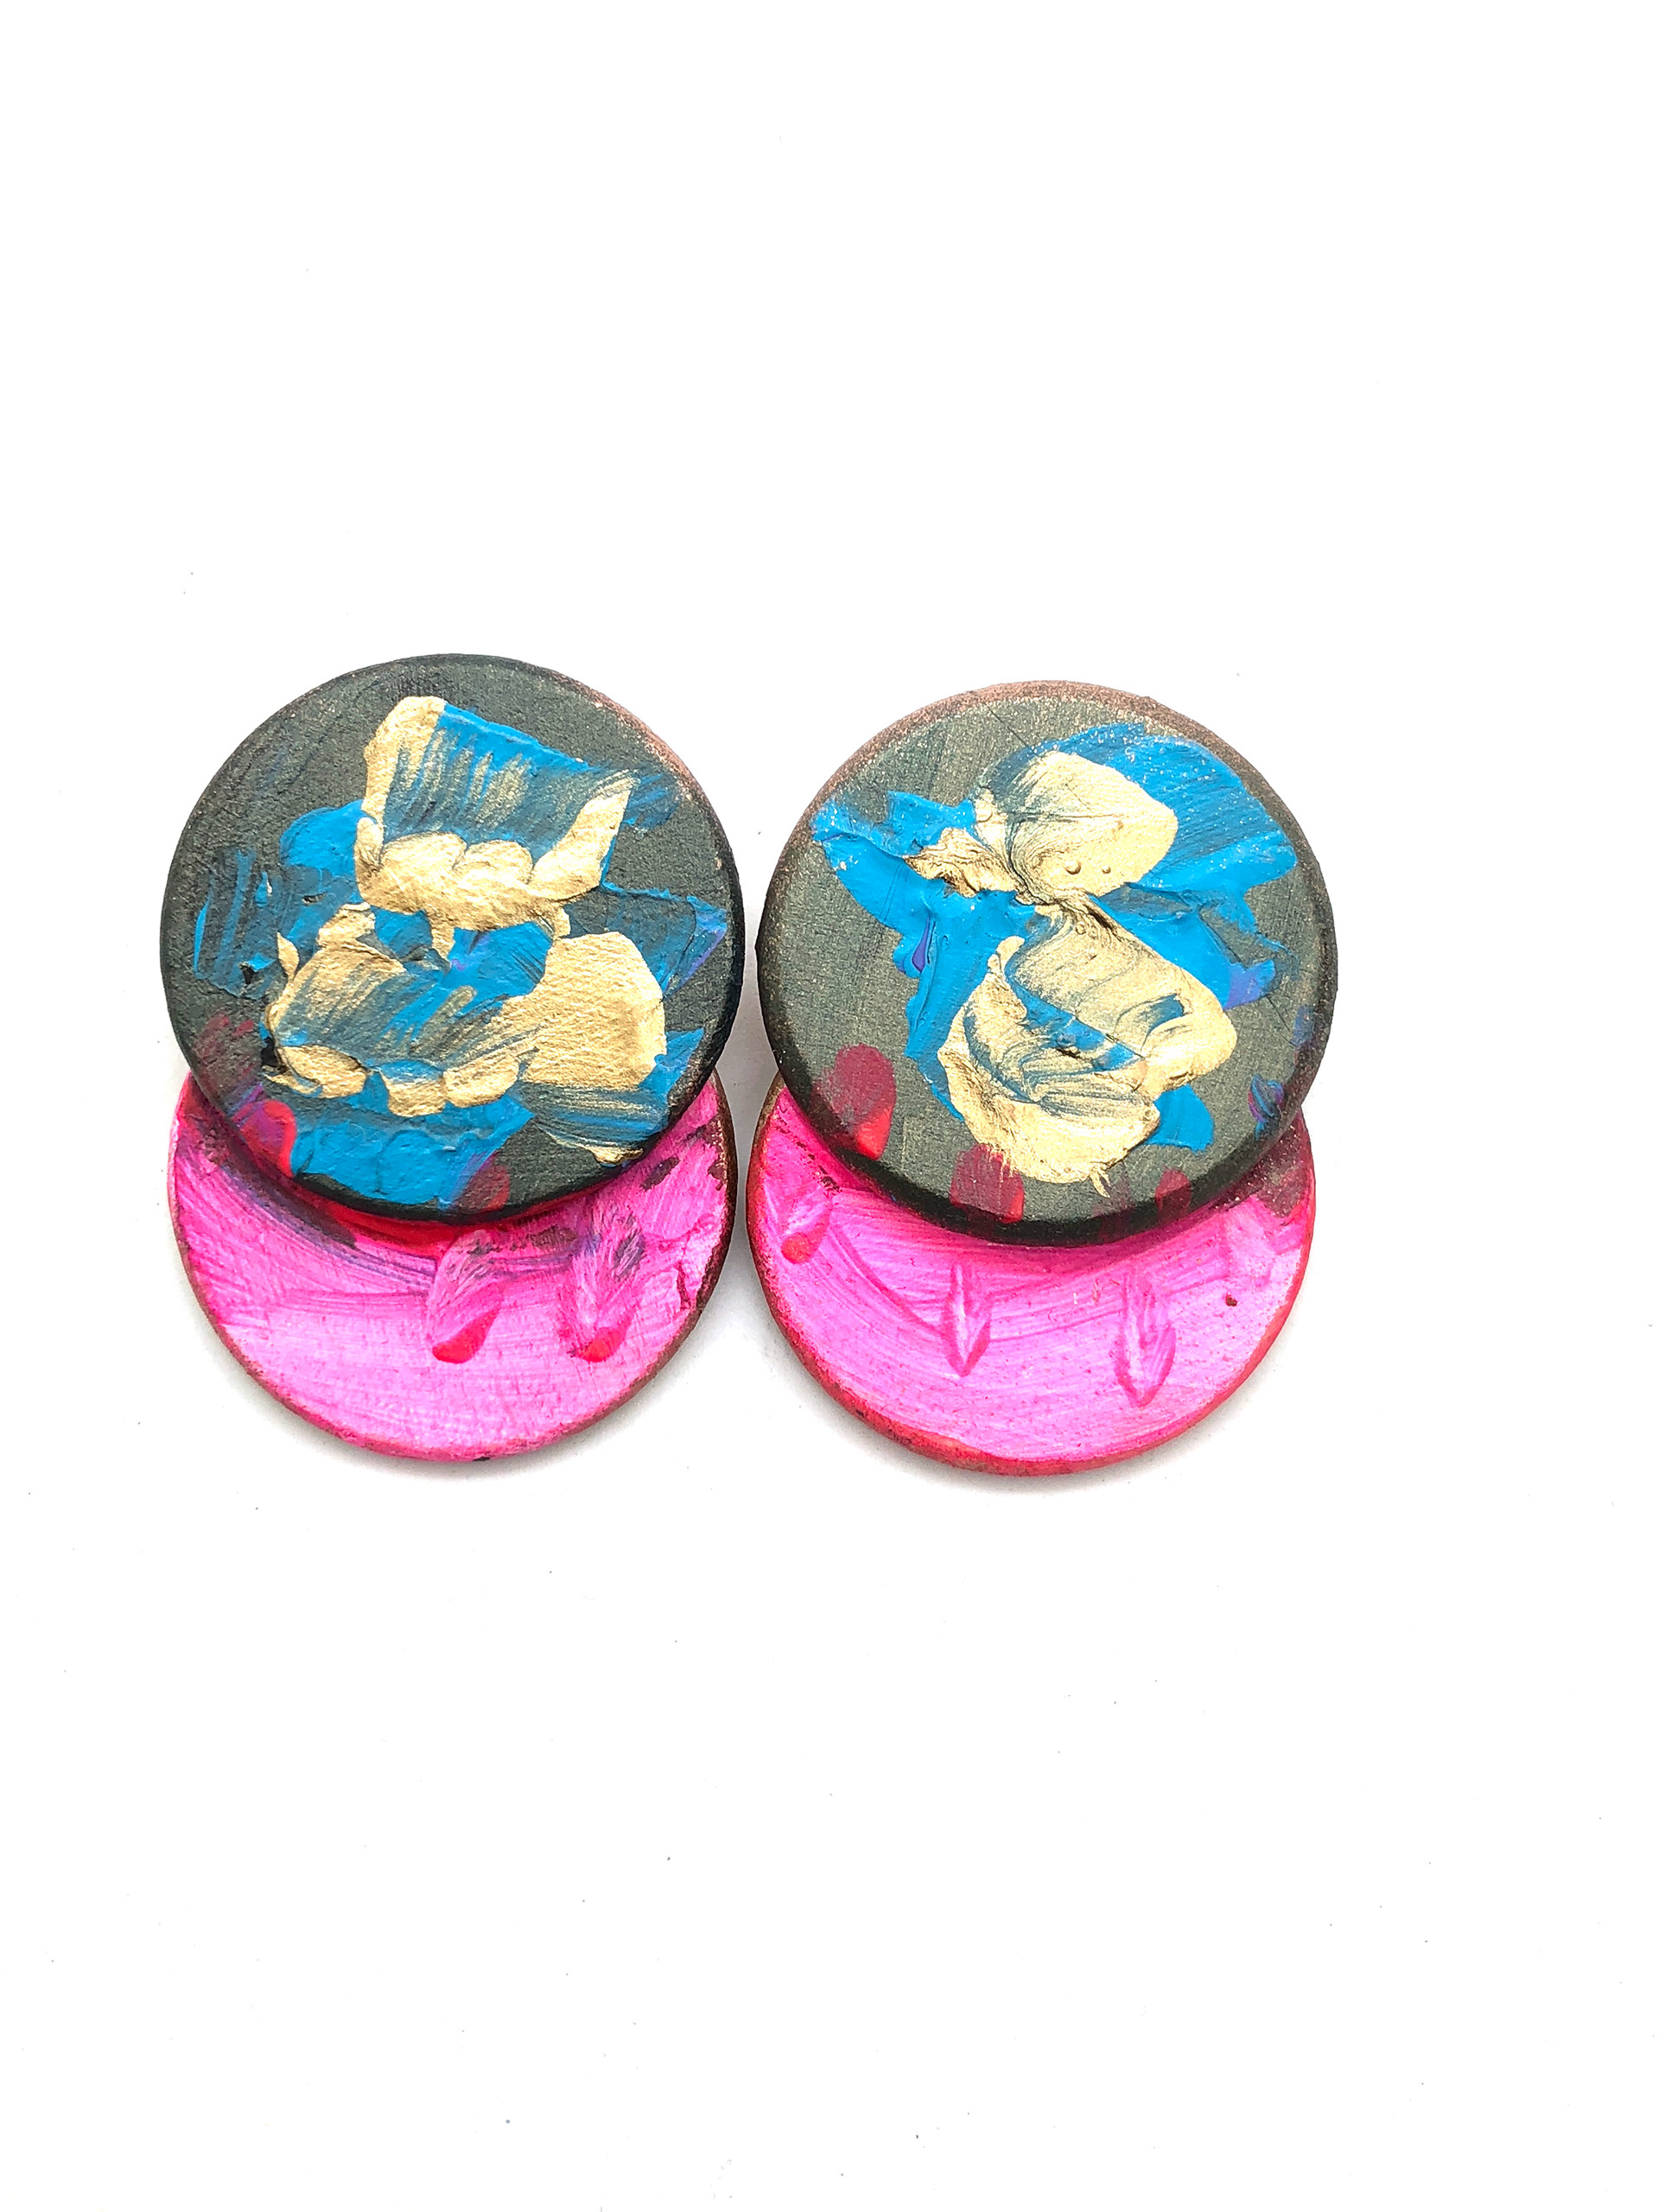 jolita category hand vintage by jewellery earrings neon page in painted havana